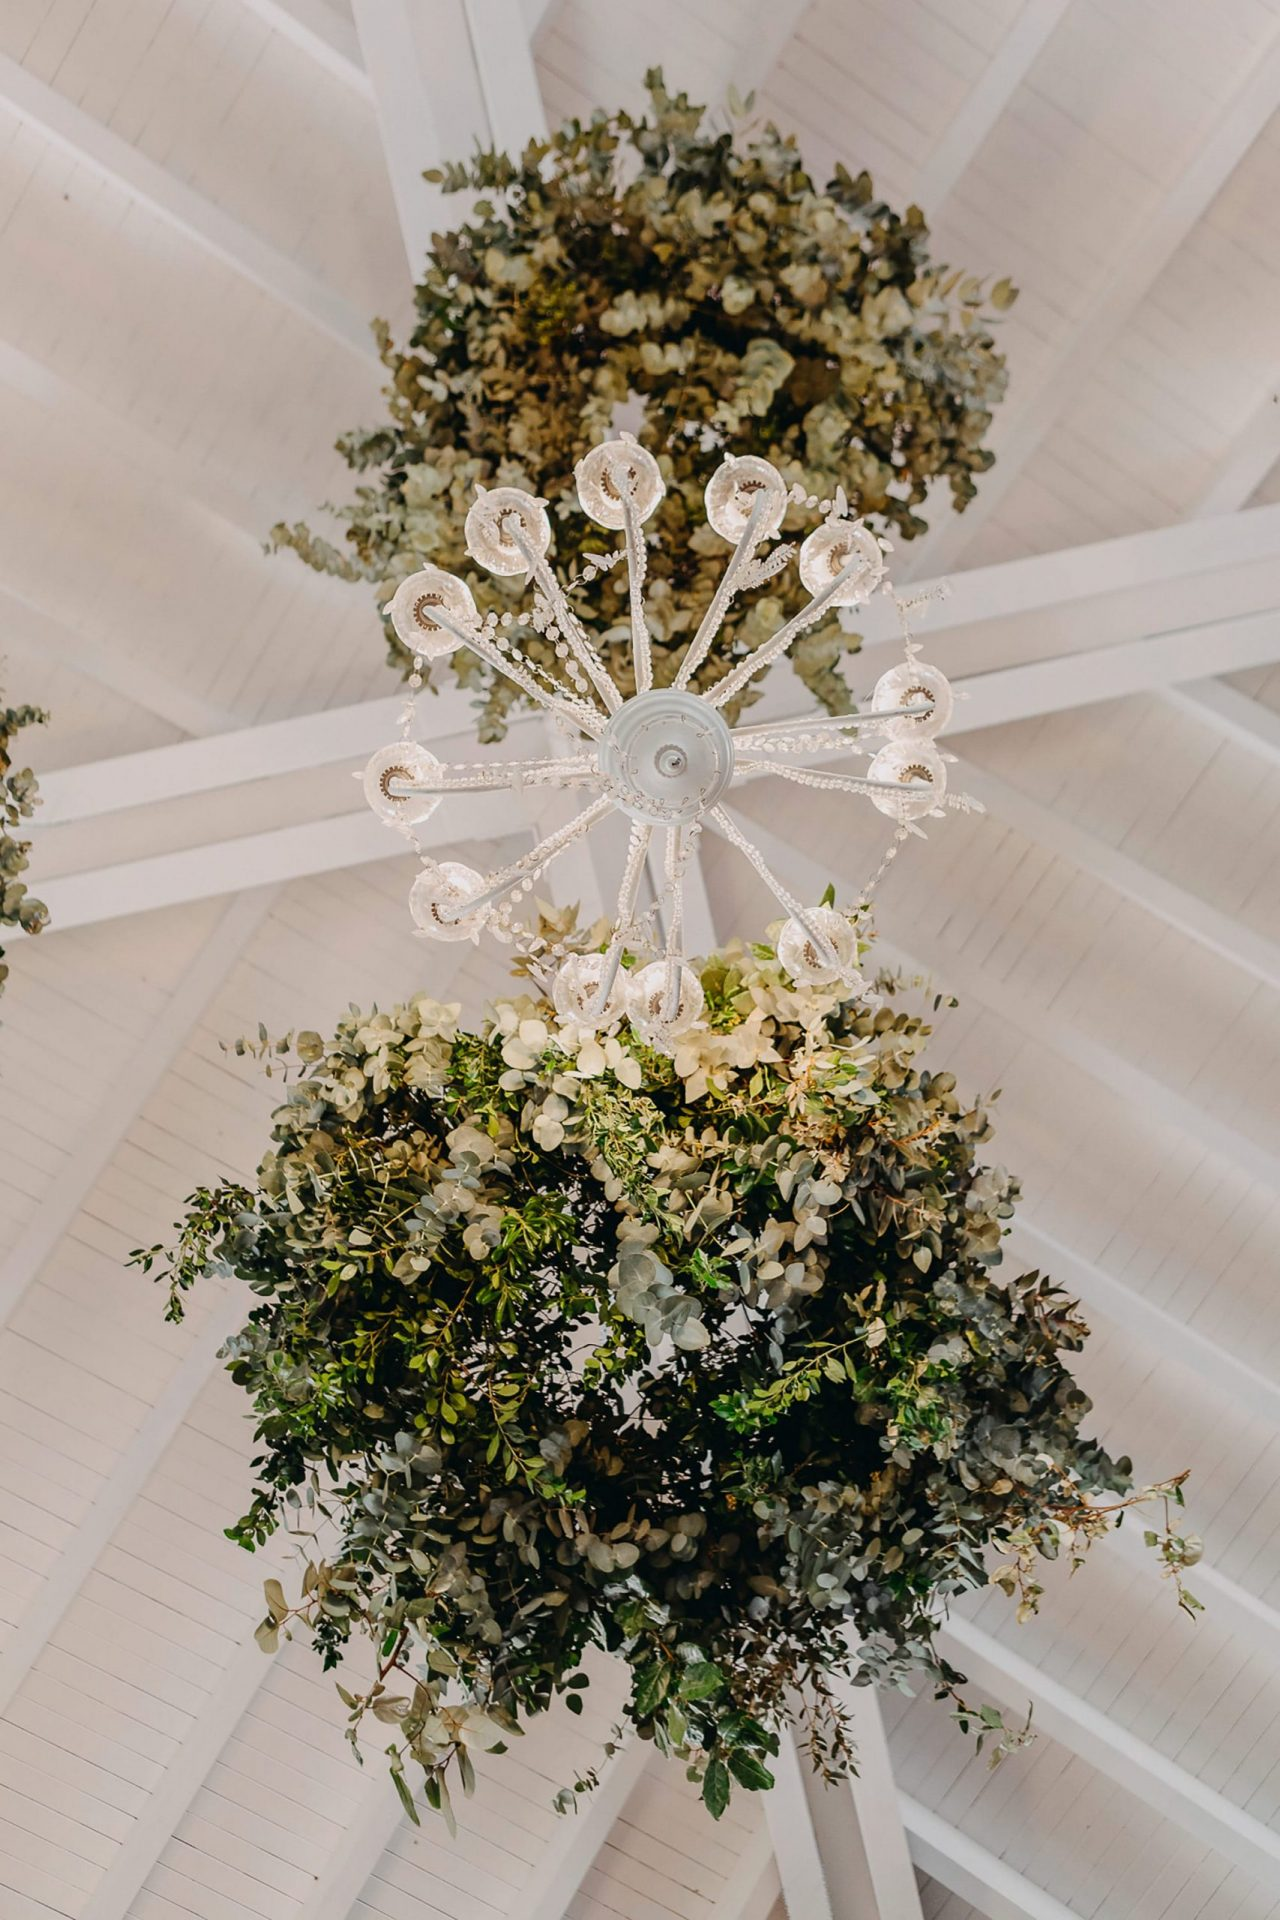 Giacomo and Federica, flowers arrangements suspension